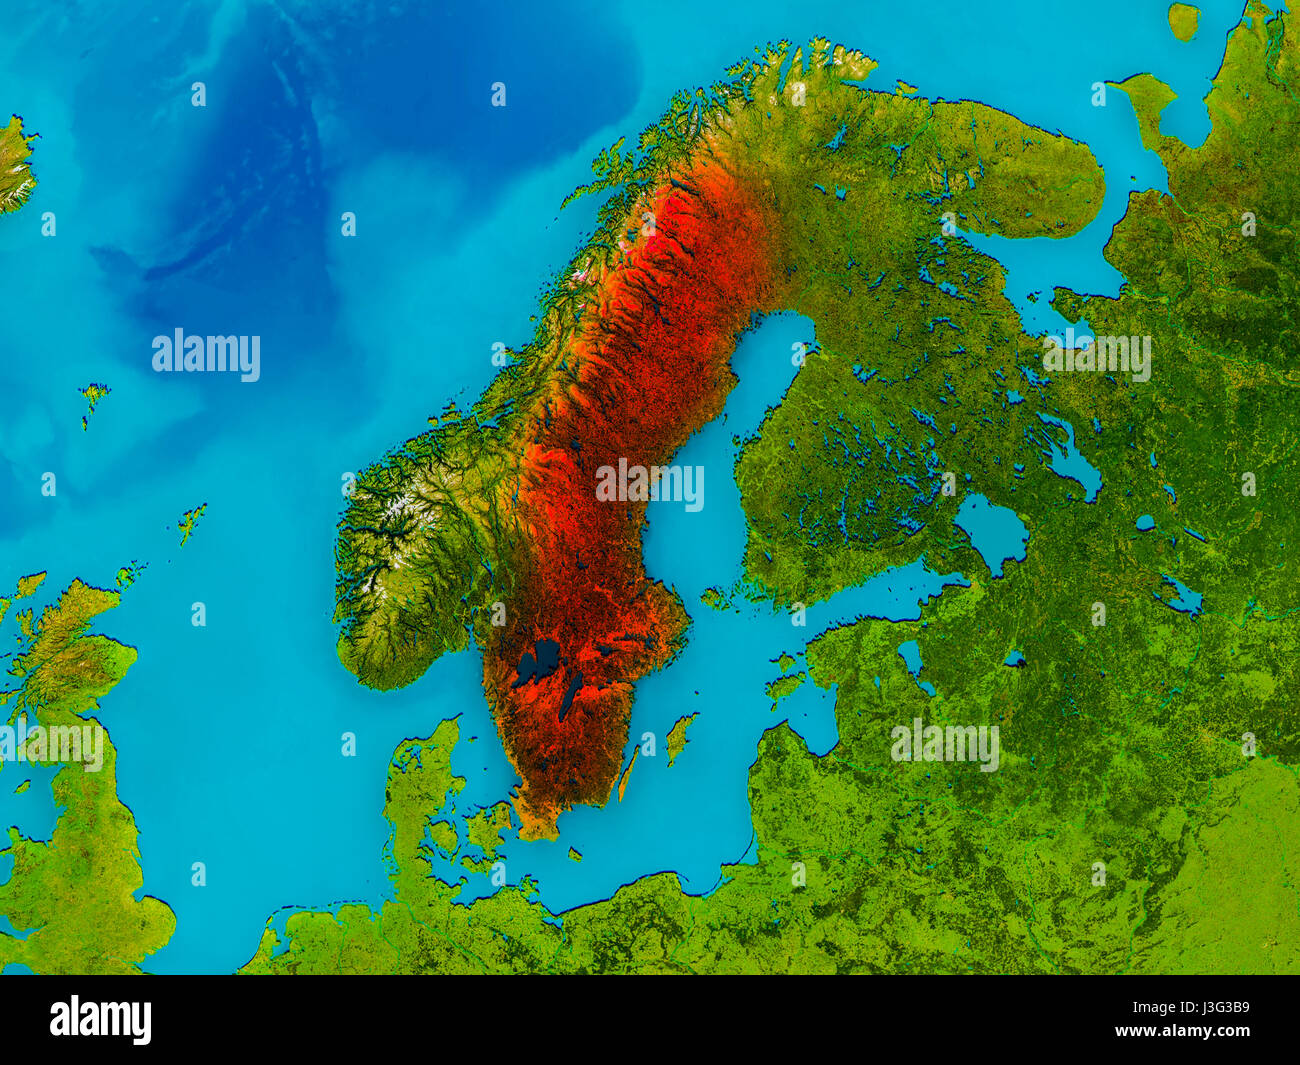 Sweden Highlighted In Red On Physical Map D Illustration - Sweden map 3d